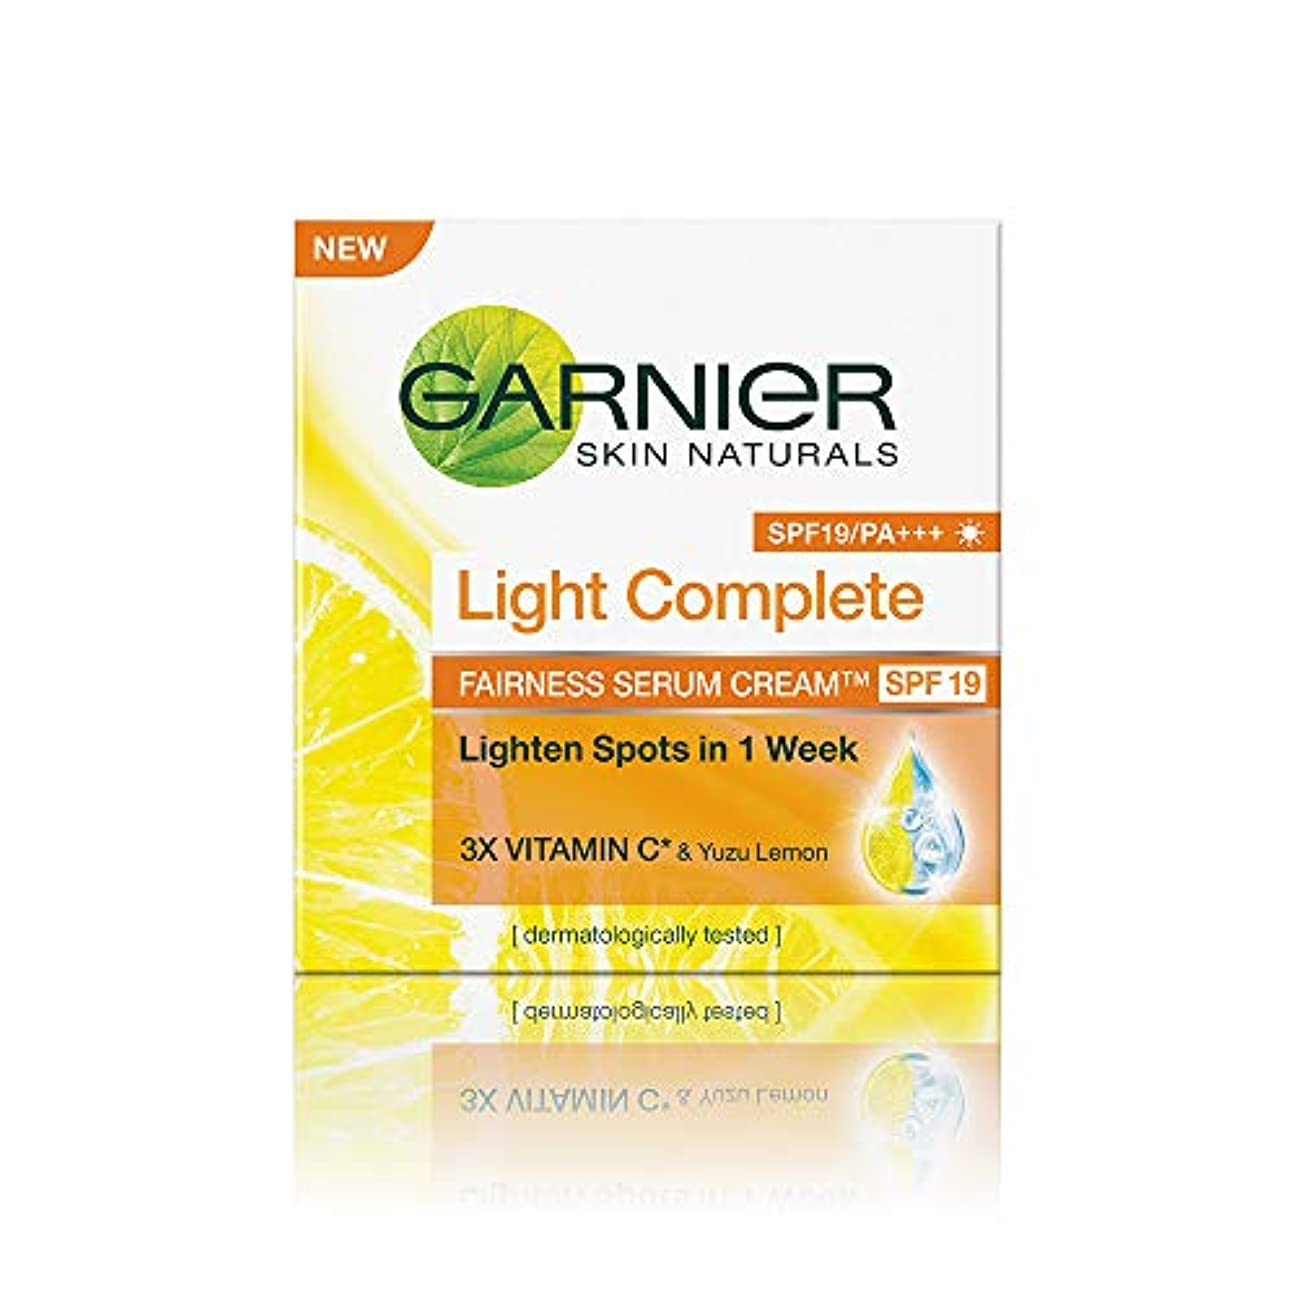 死ぬ遷移マーチャンダイジングGarnier Skin Naturals Light Complete Serum Cream SPF 19, 45g